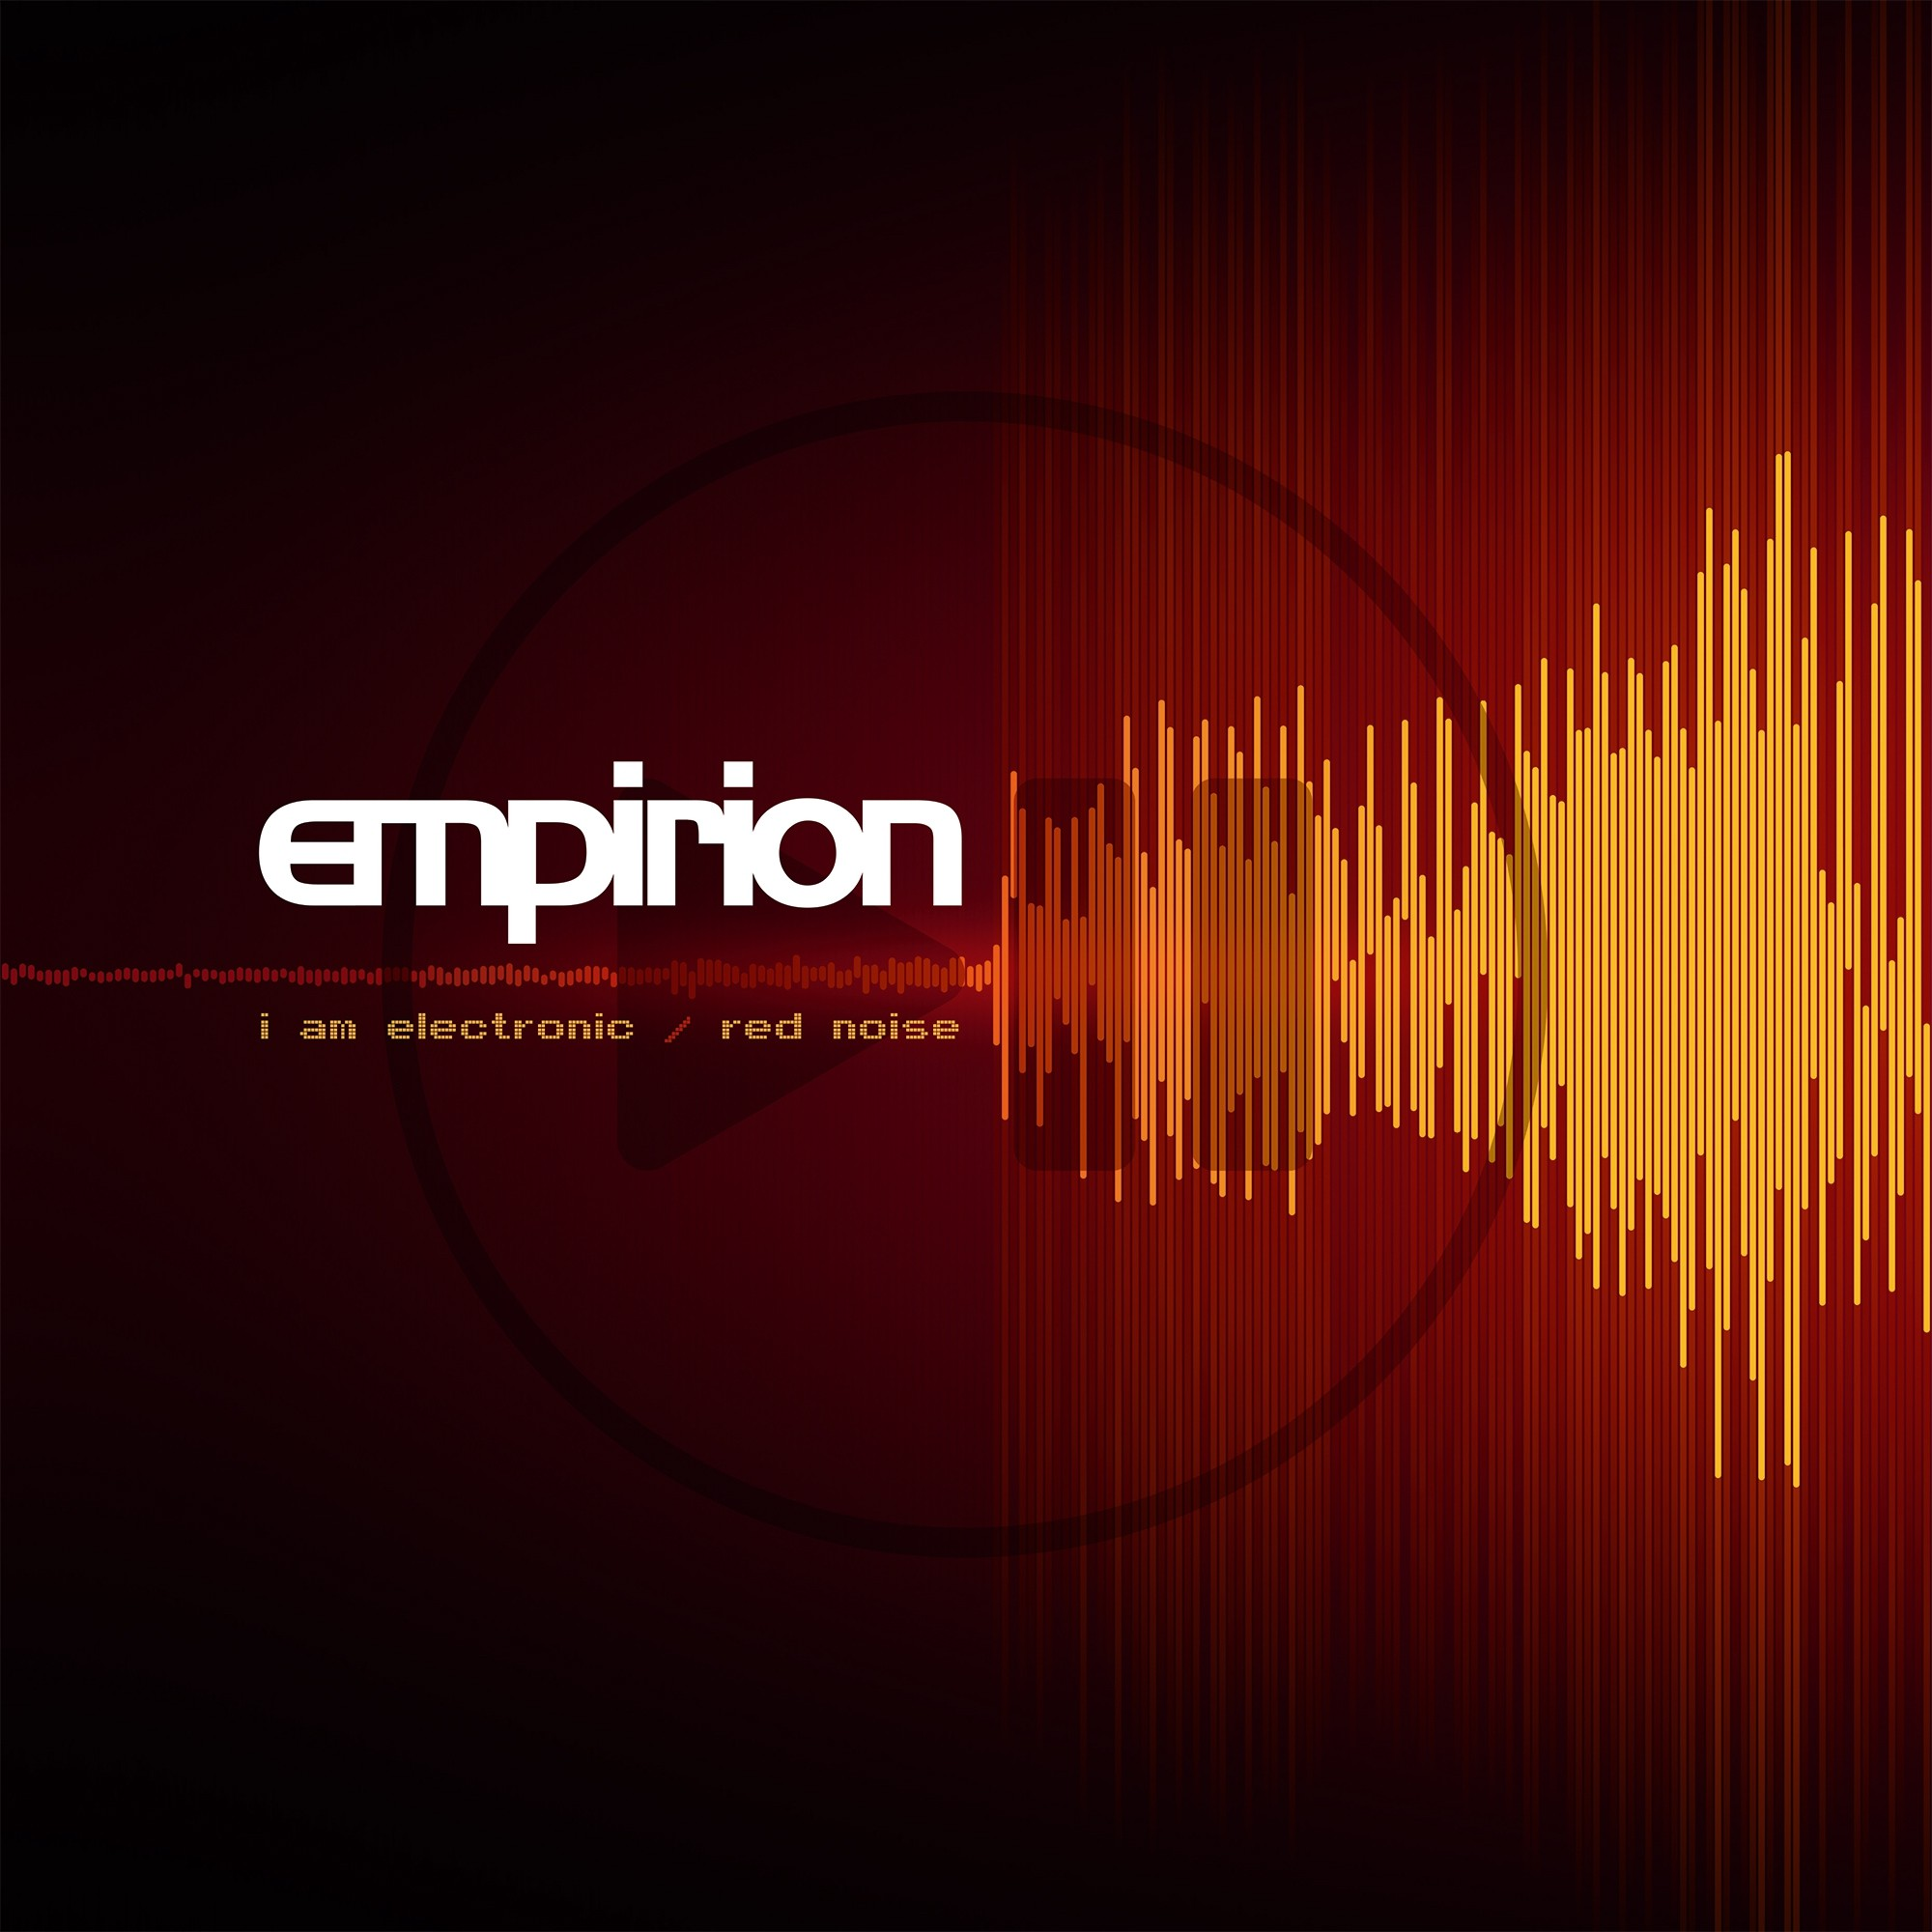 Empirion - I Am Electronic/ Red Noise (Limited Red Vinyl) - MaxiLP